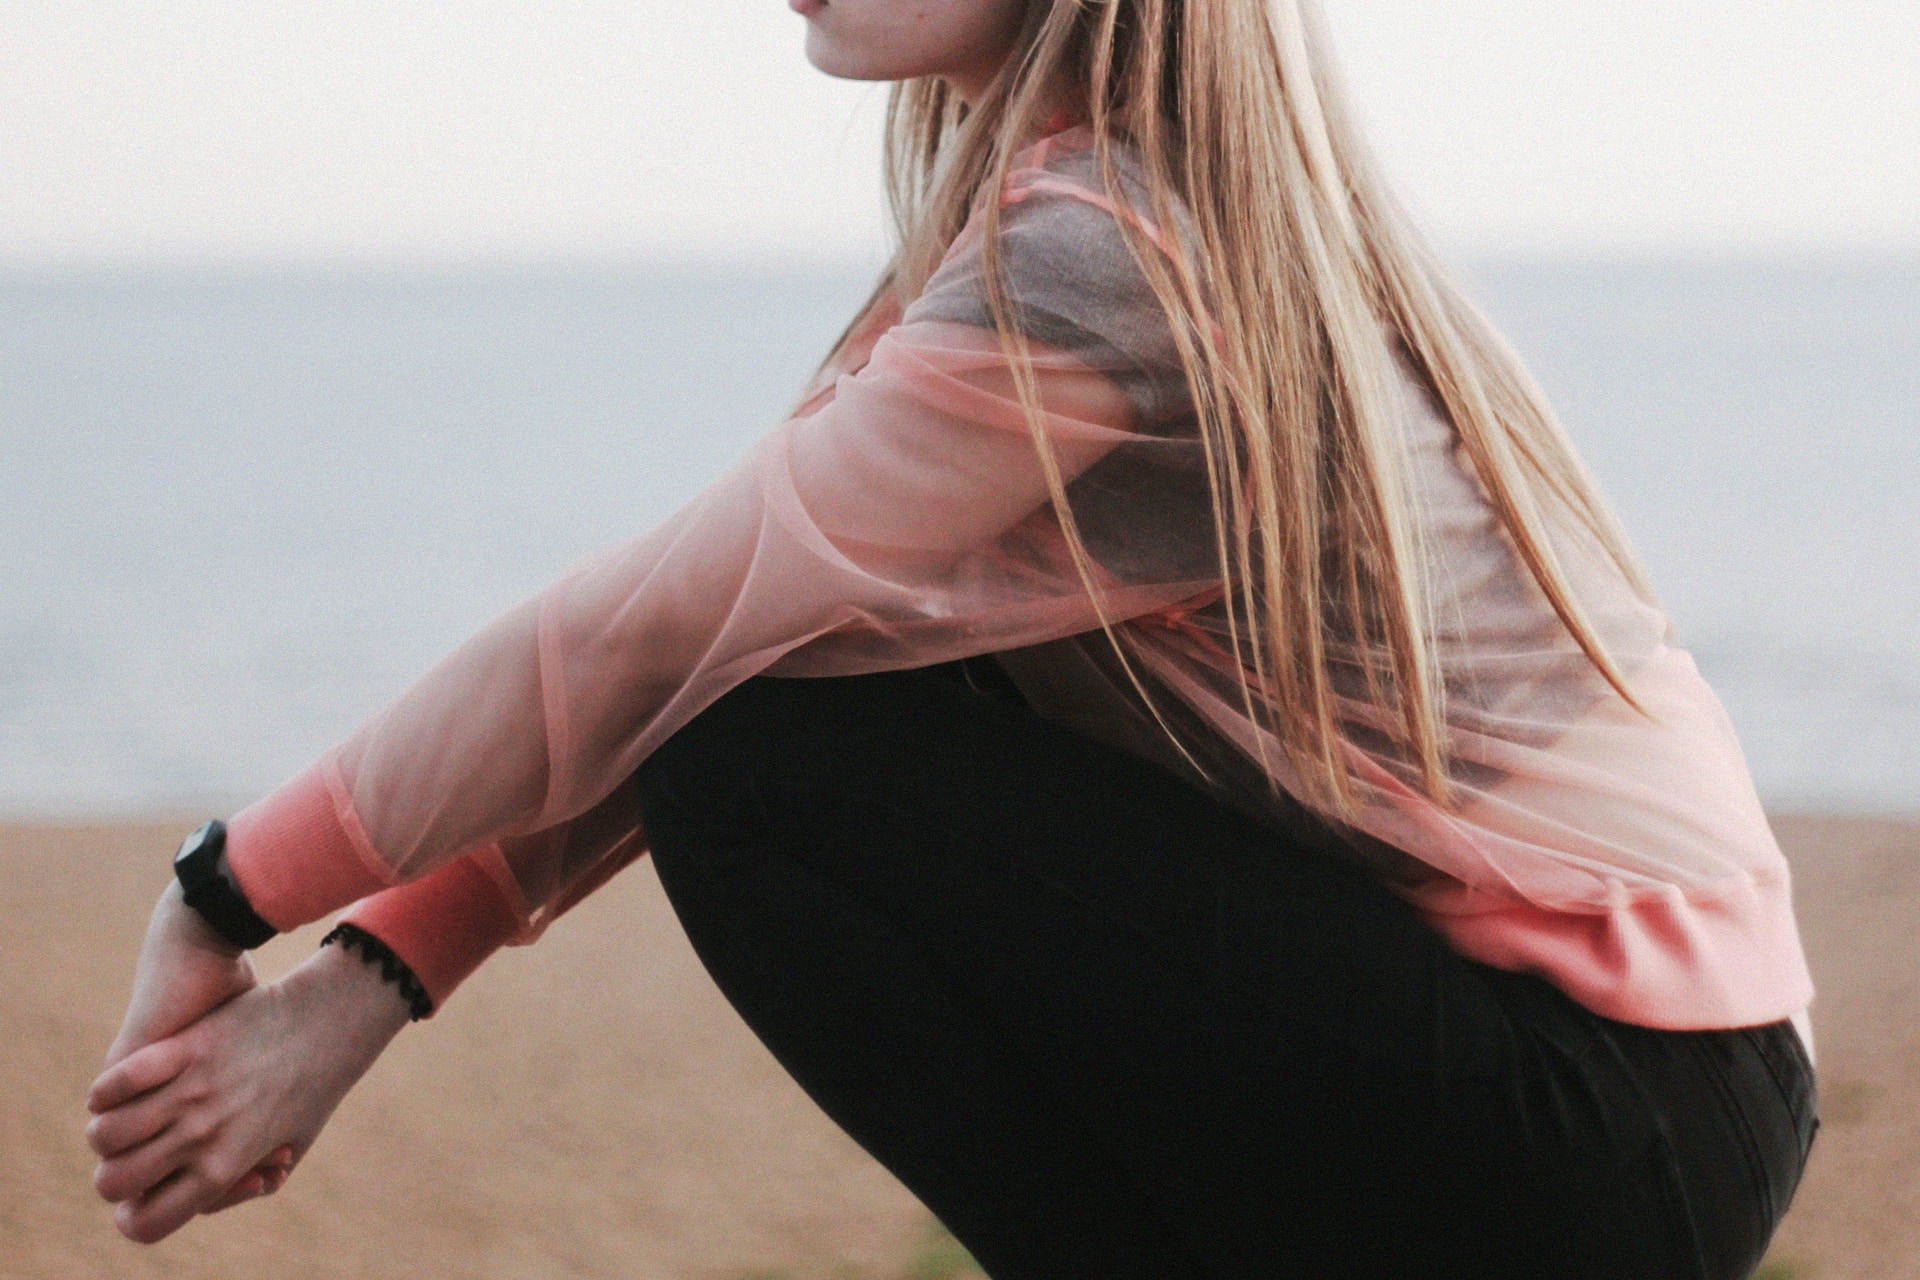 woman in pink long sleeve shirt and black pants sitting on brown sand during daytime